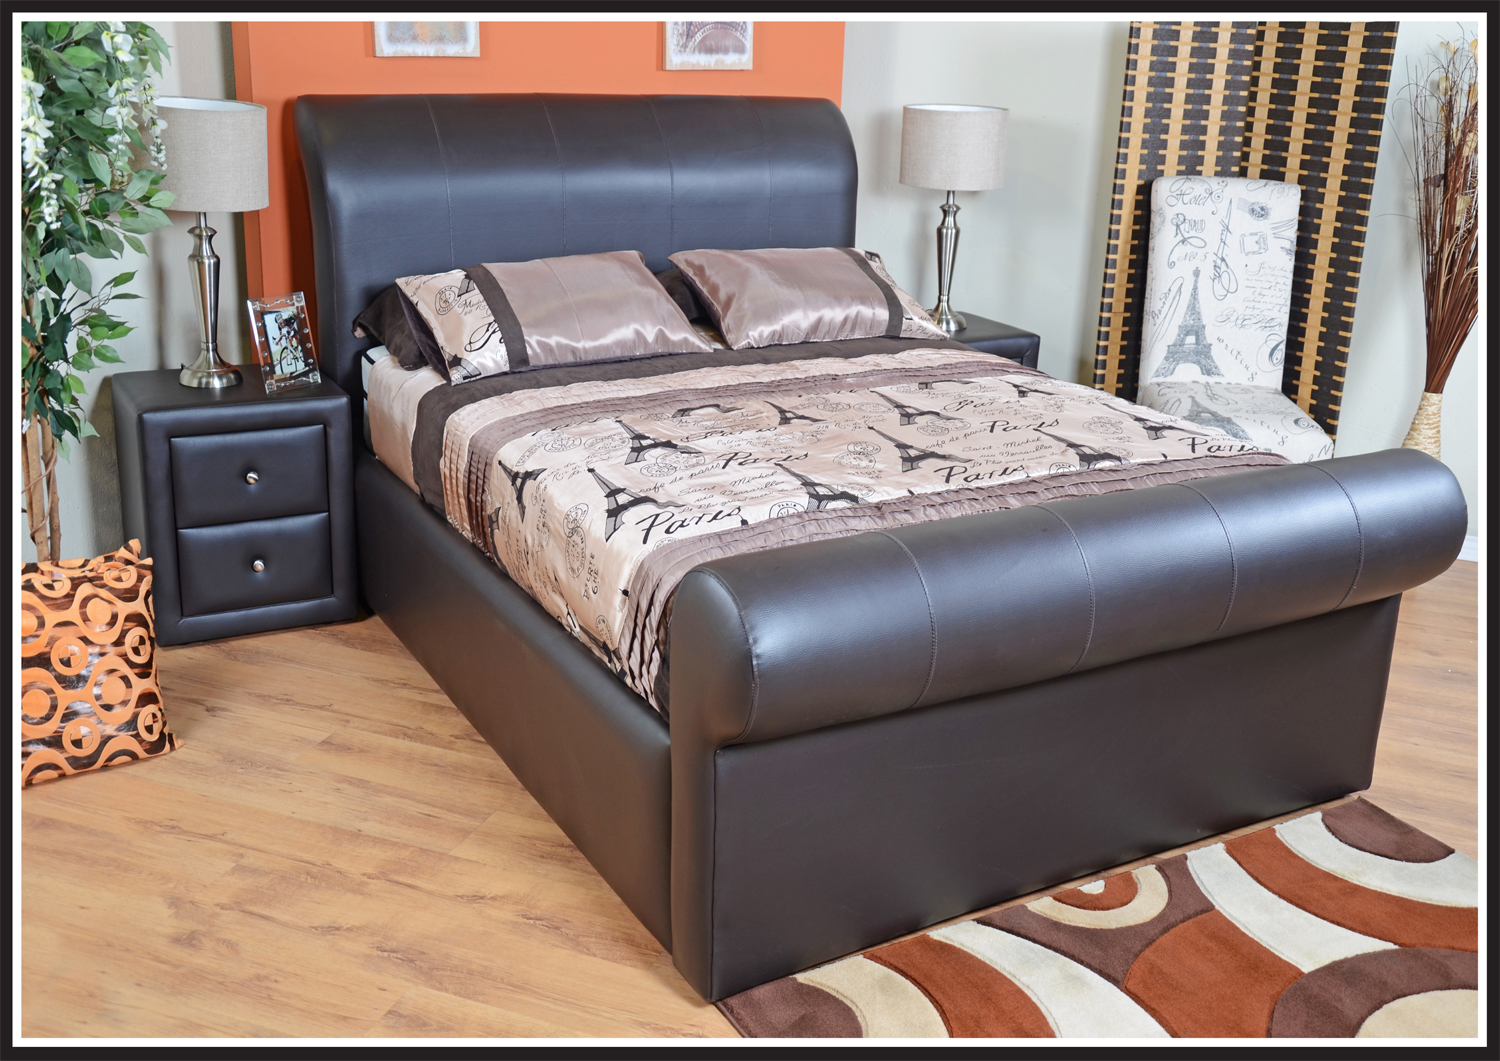 Bedroom sets gatsby bedroom set was listed for r5 for Cheap bedroom furniture za